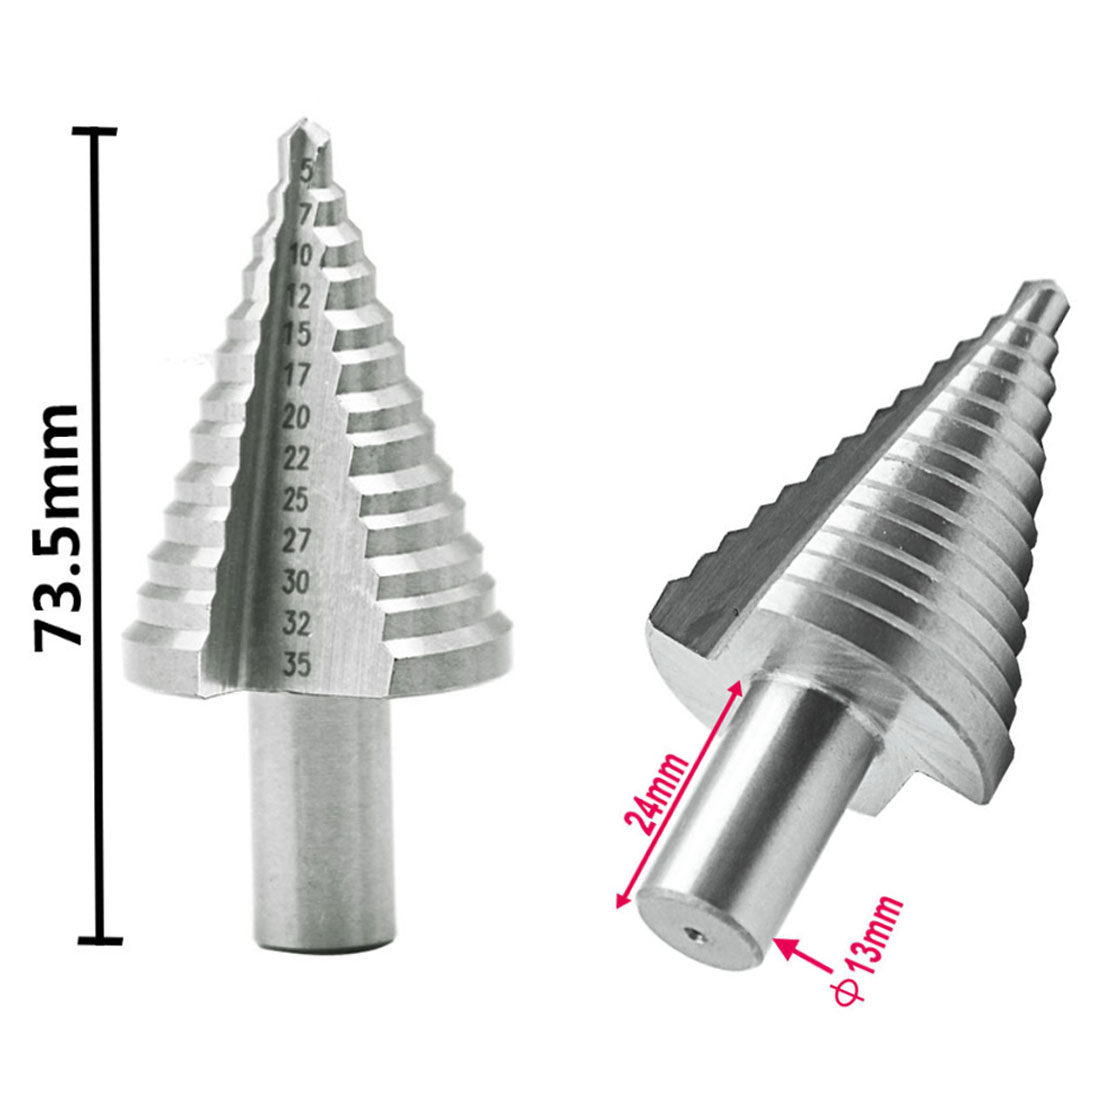 5-35mm Natural High Speed Steel Step Drill 13 Steps Woodworking  HSS Cobalt Reamer Multiple Hole Metal Drilling Tool